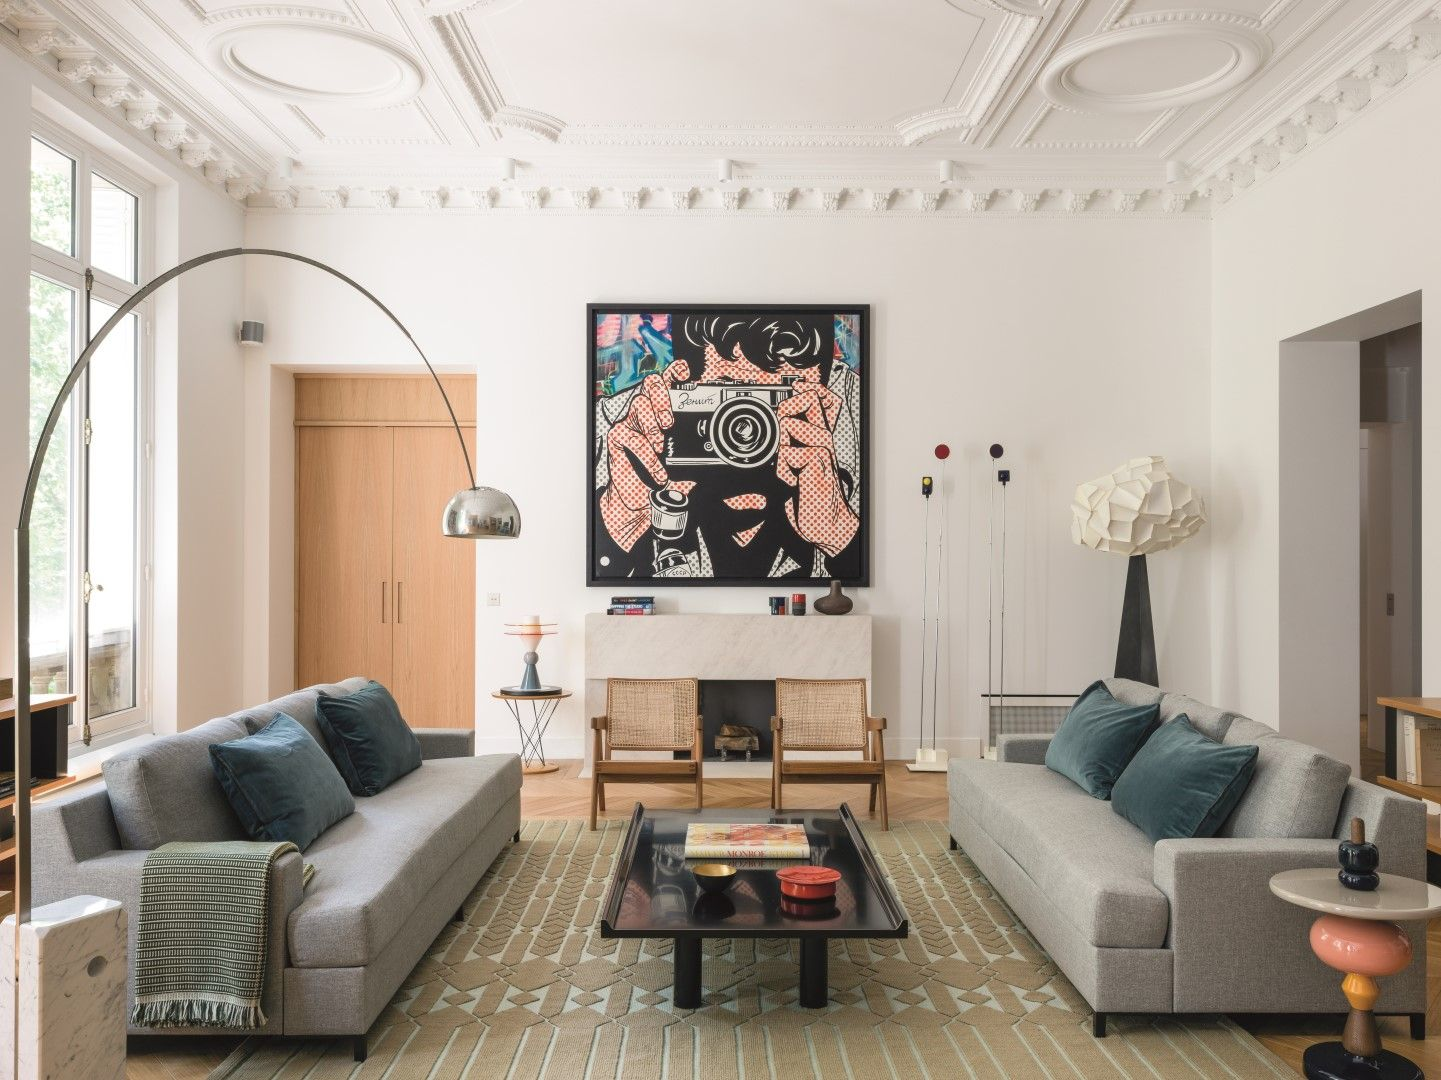 Home Tour: A Parisian Apartment Built Around Art